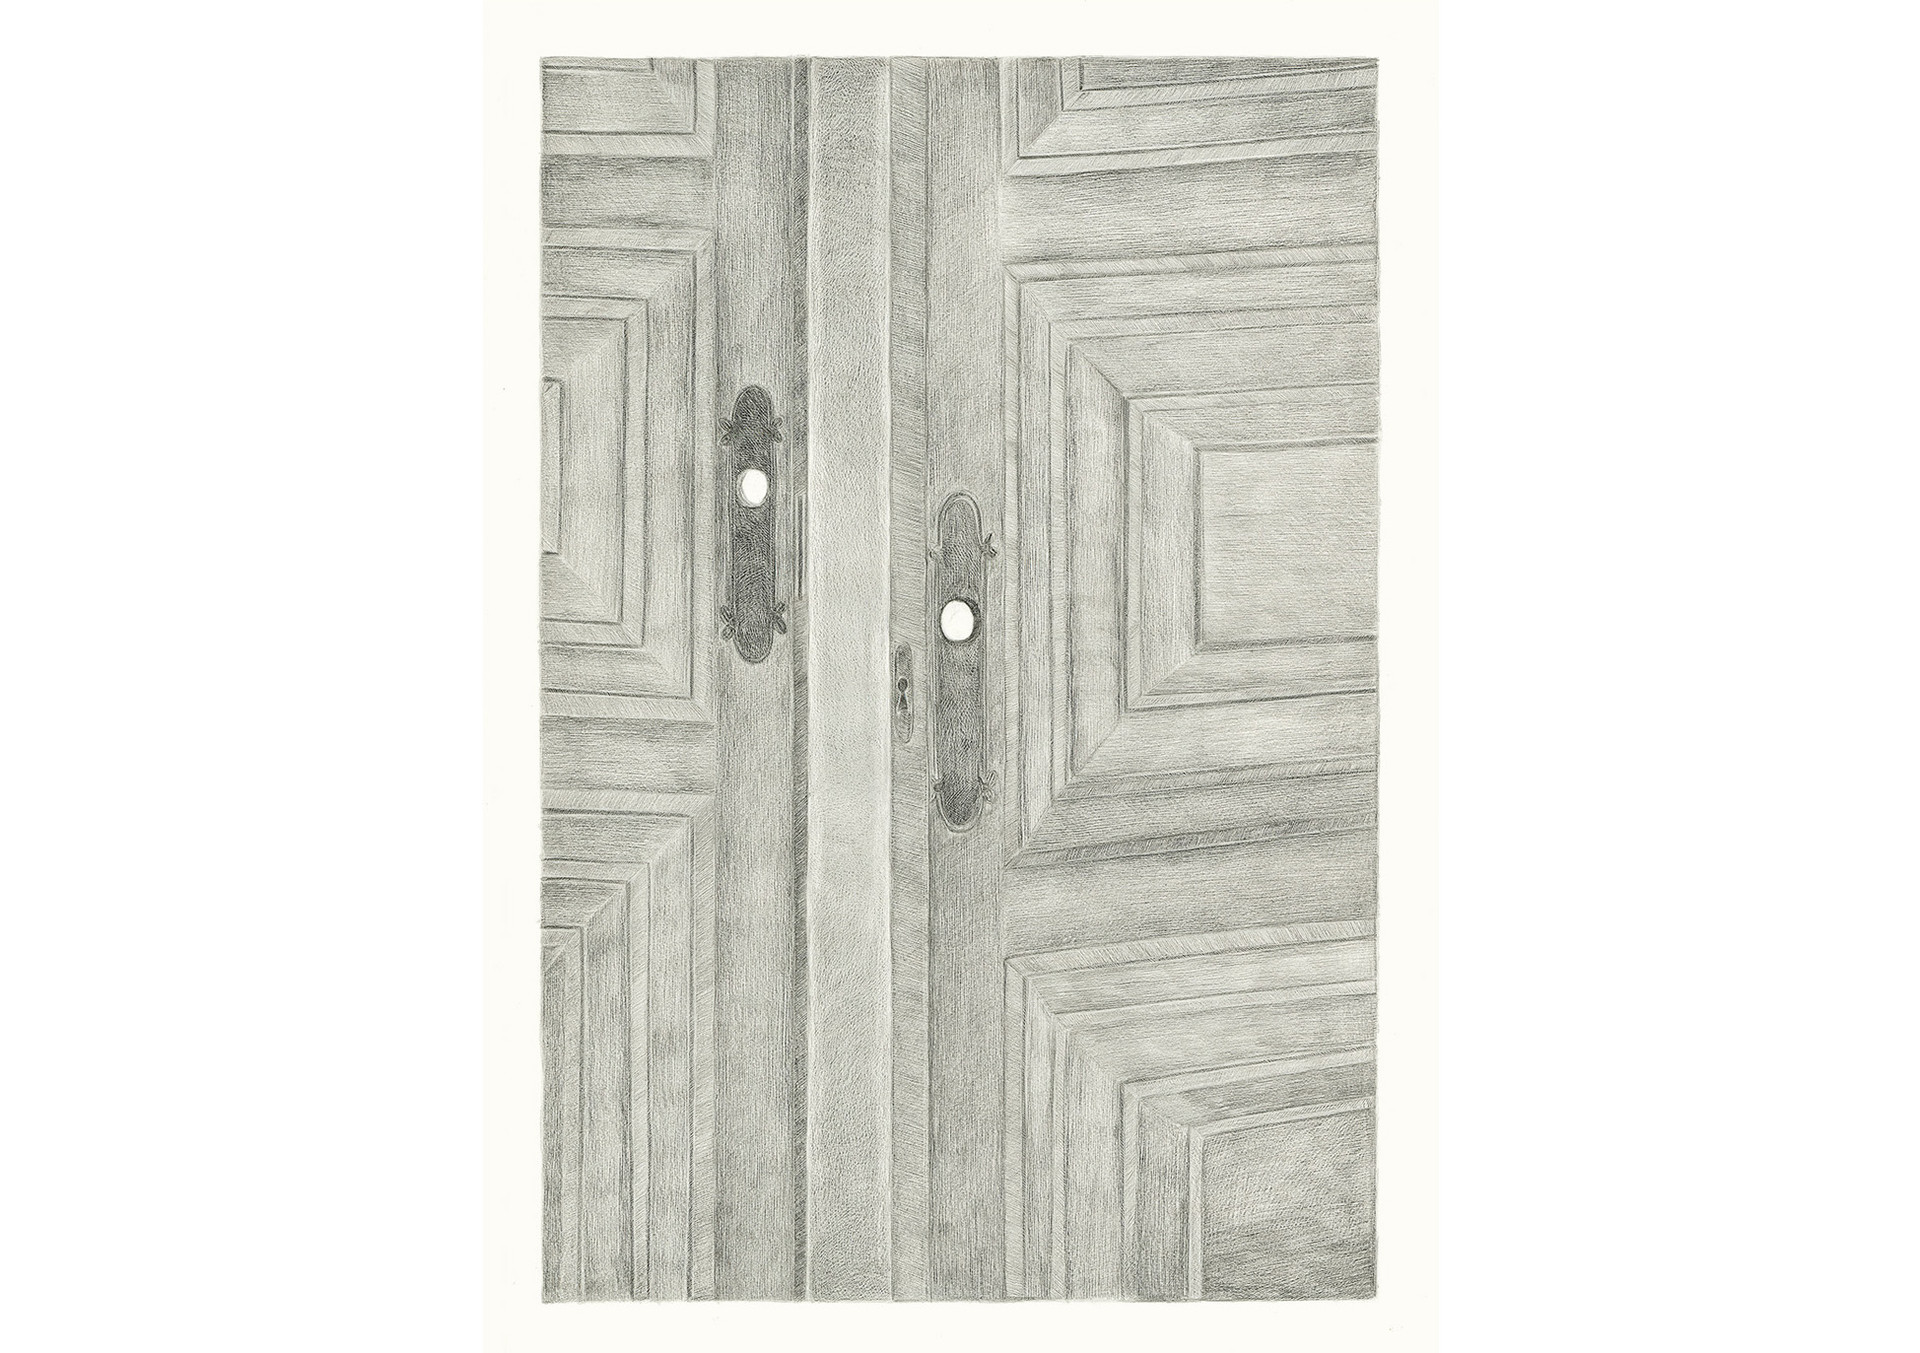 There are no Locks in this House, 2013. Pencils on paper, 59.4 × 42 cm